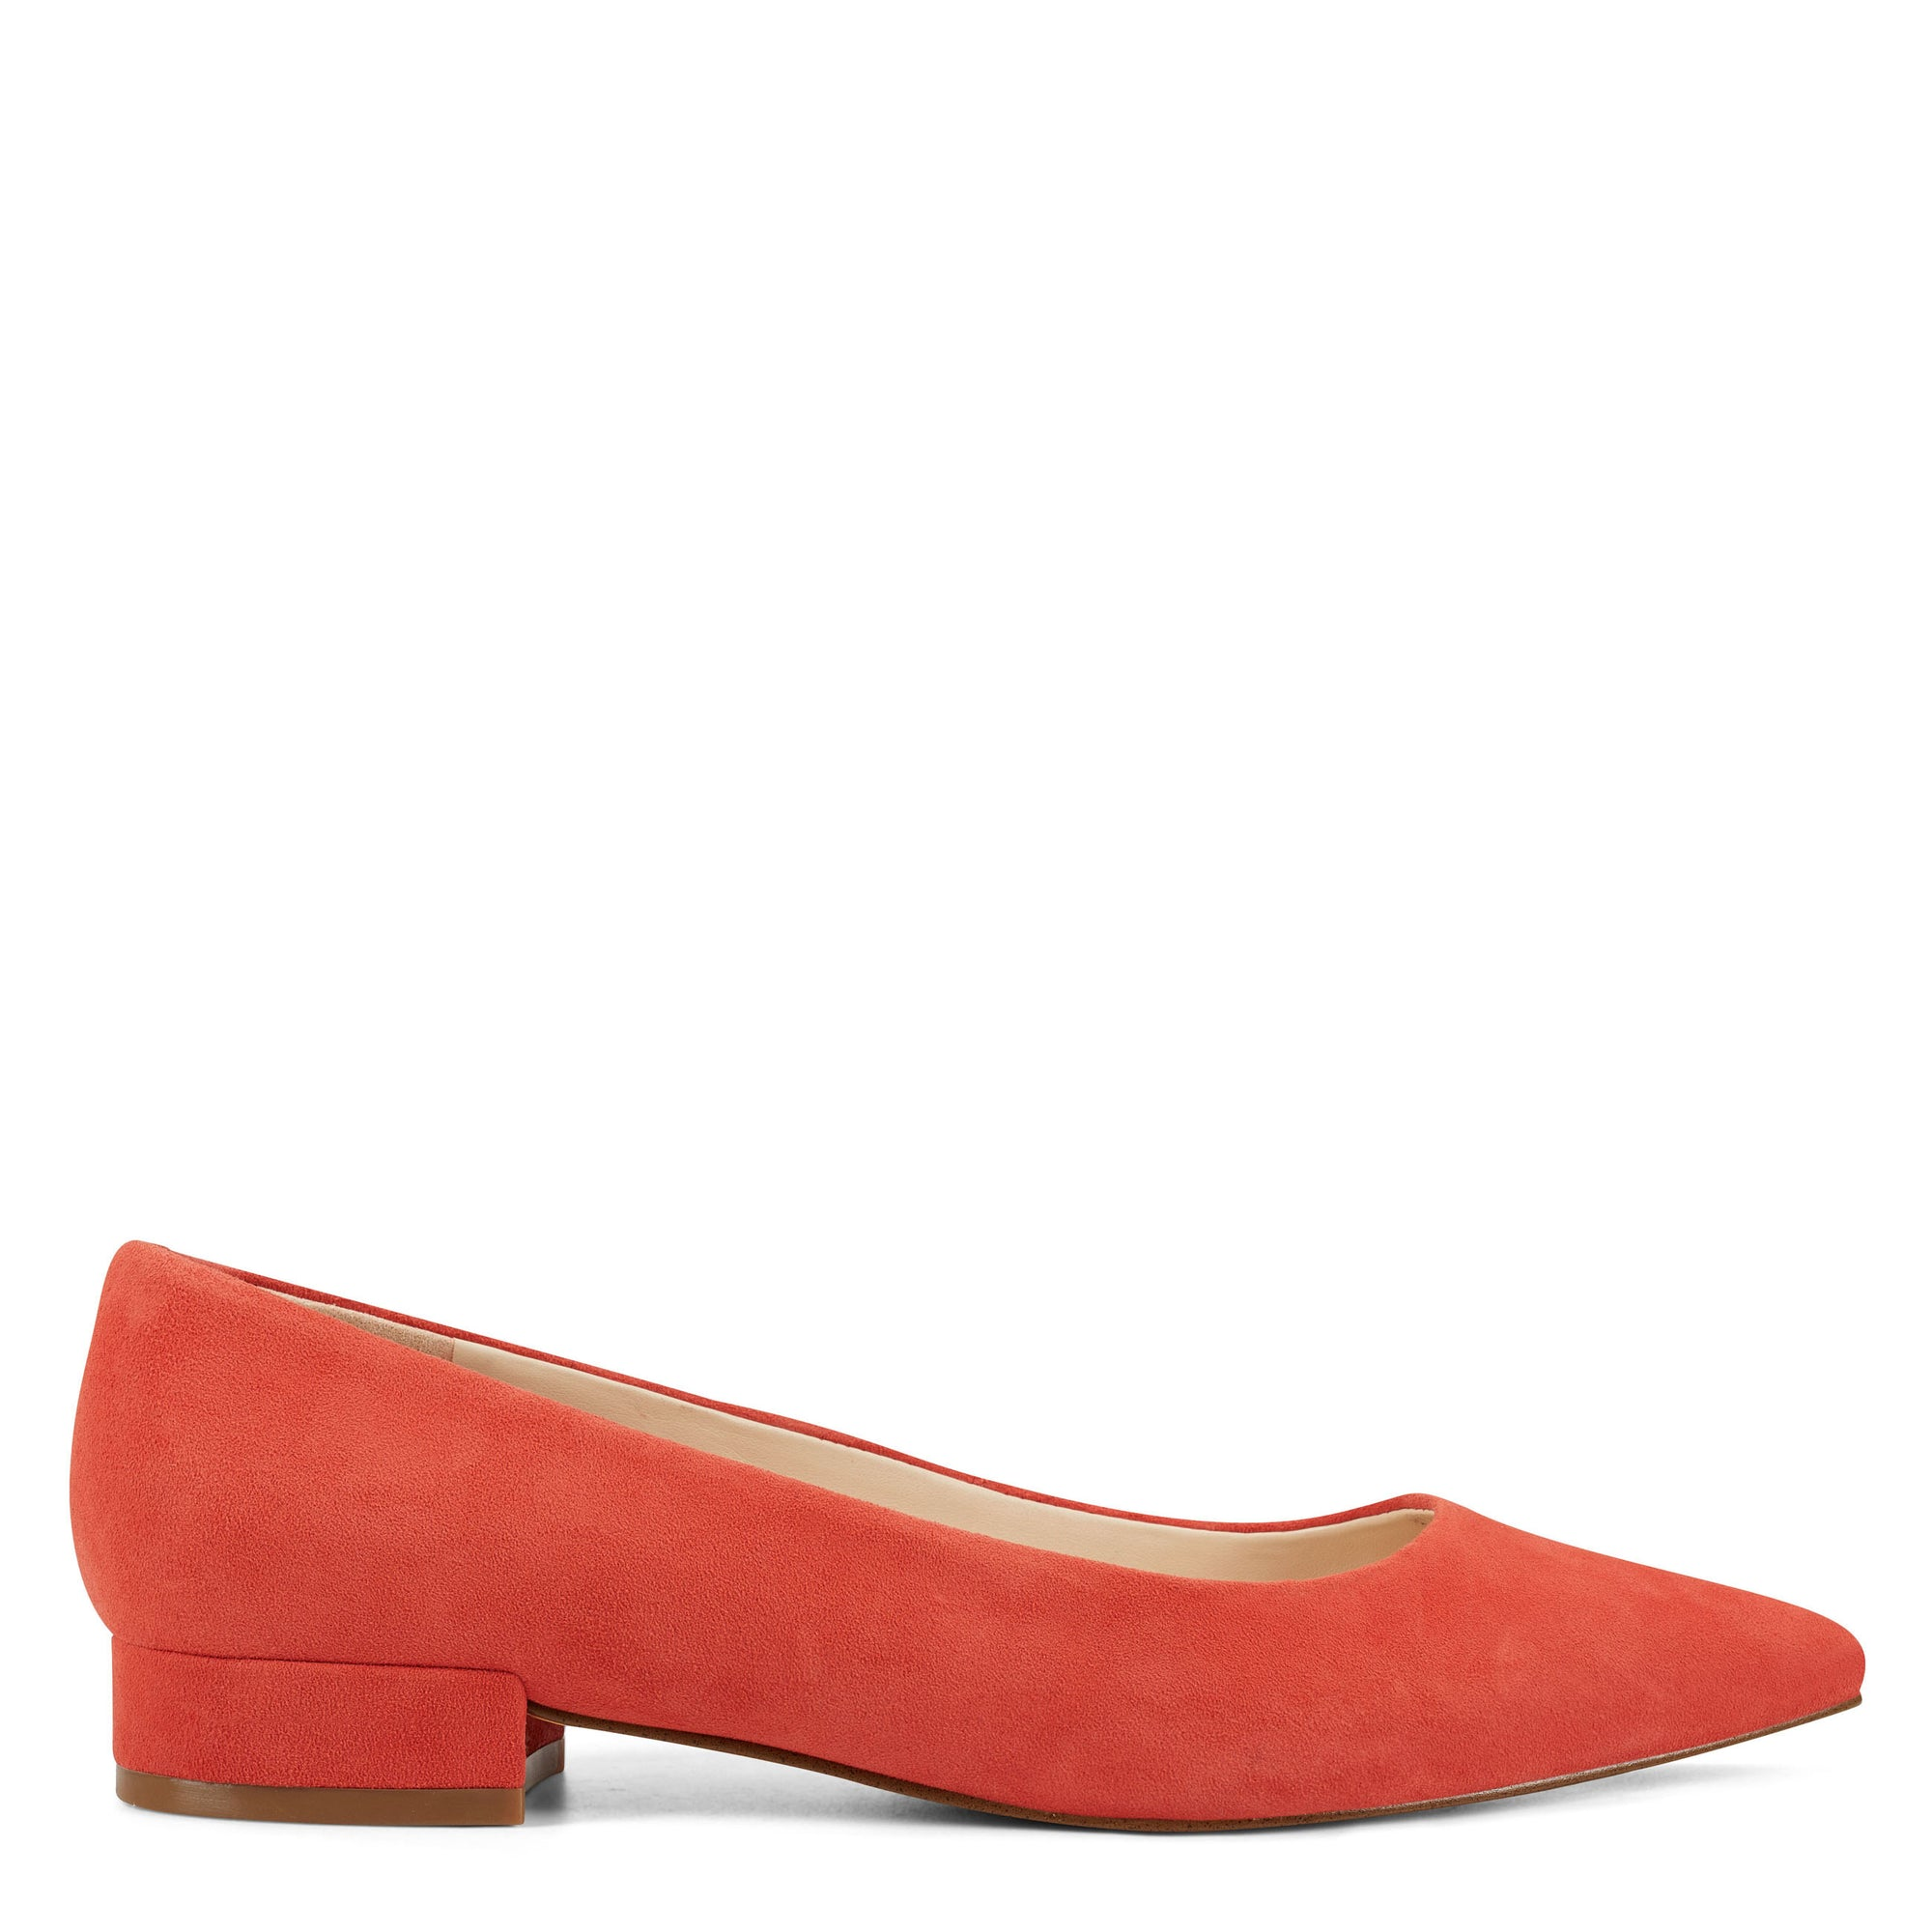 fayth-ballet-flats-in-orange-suede